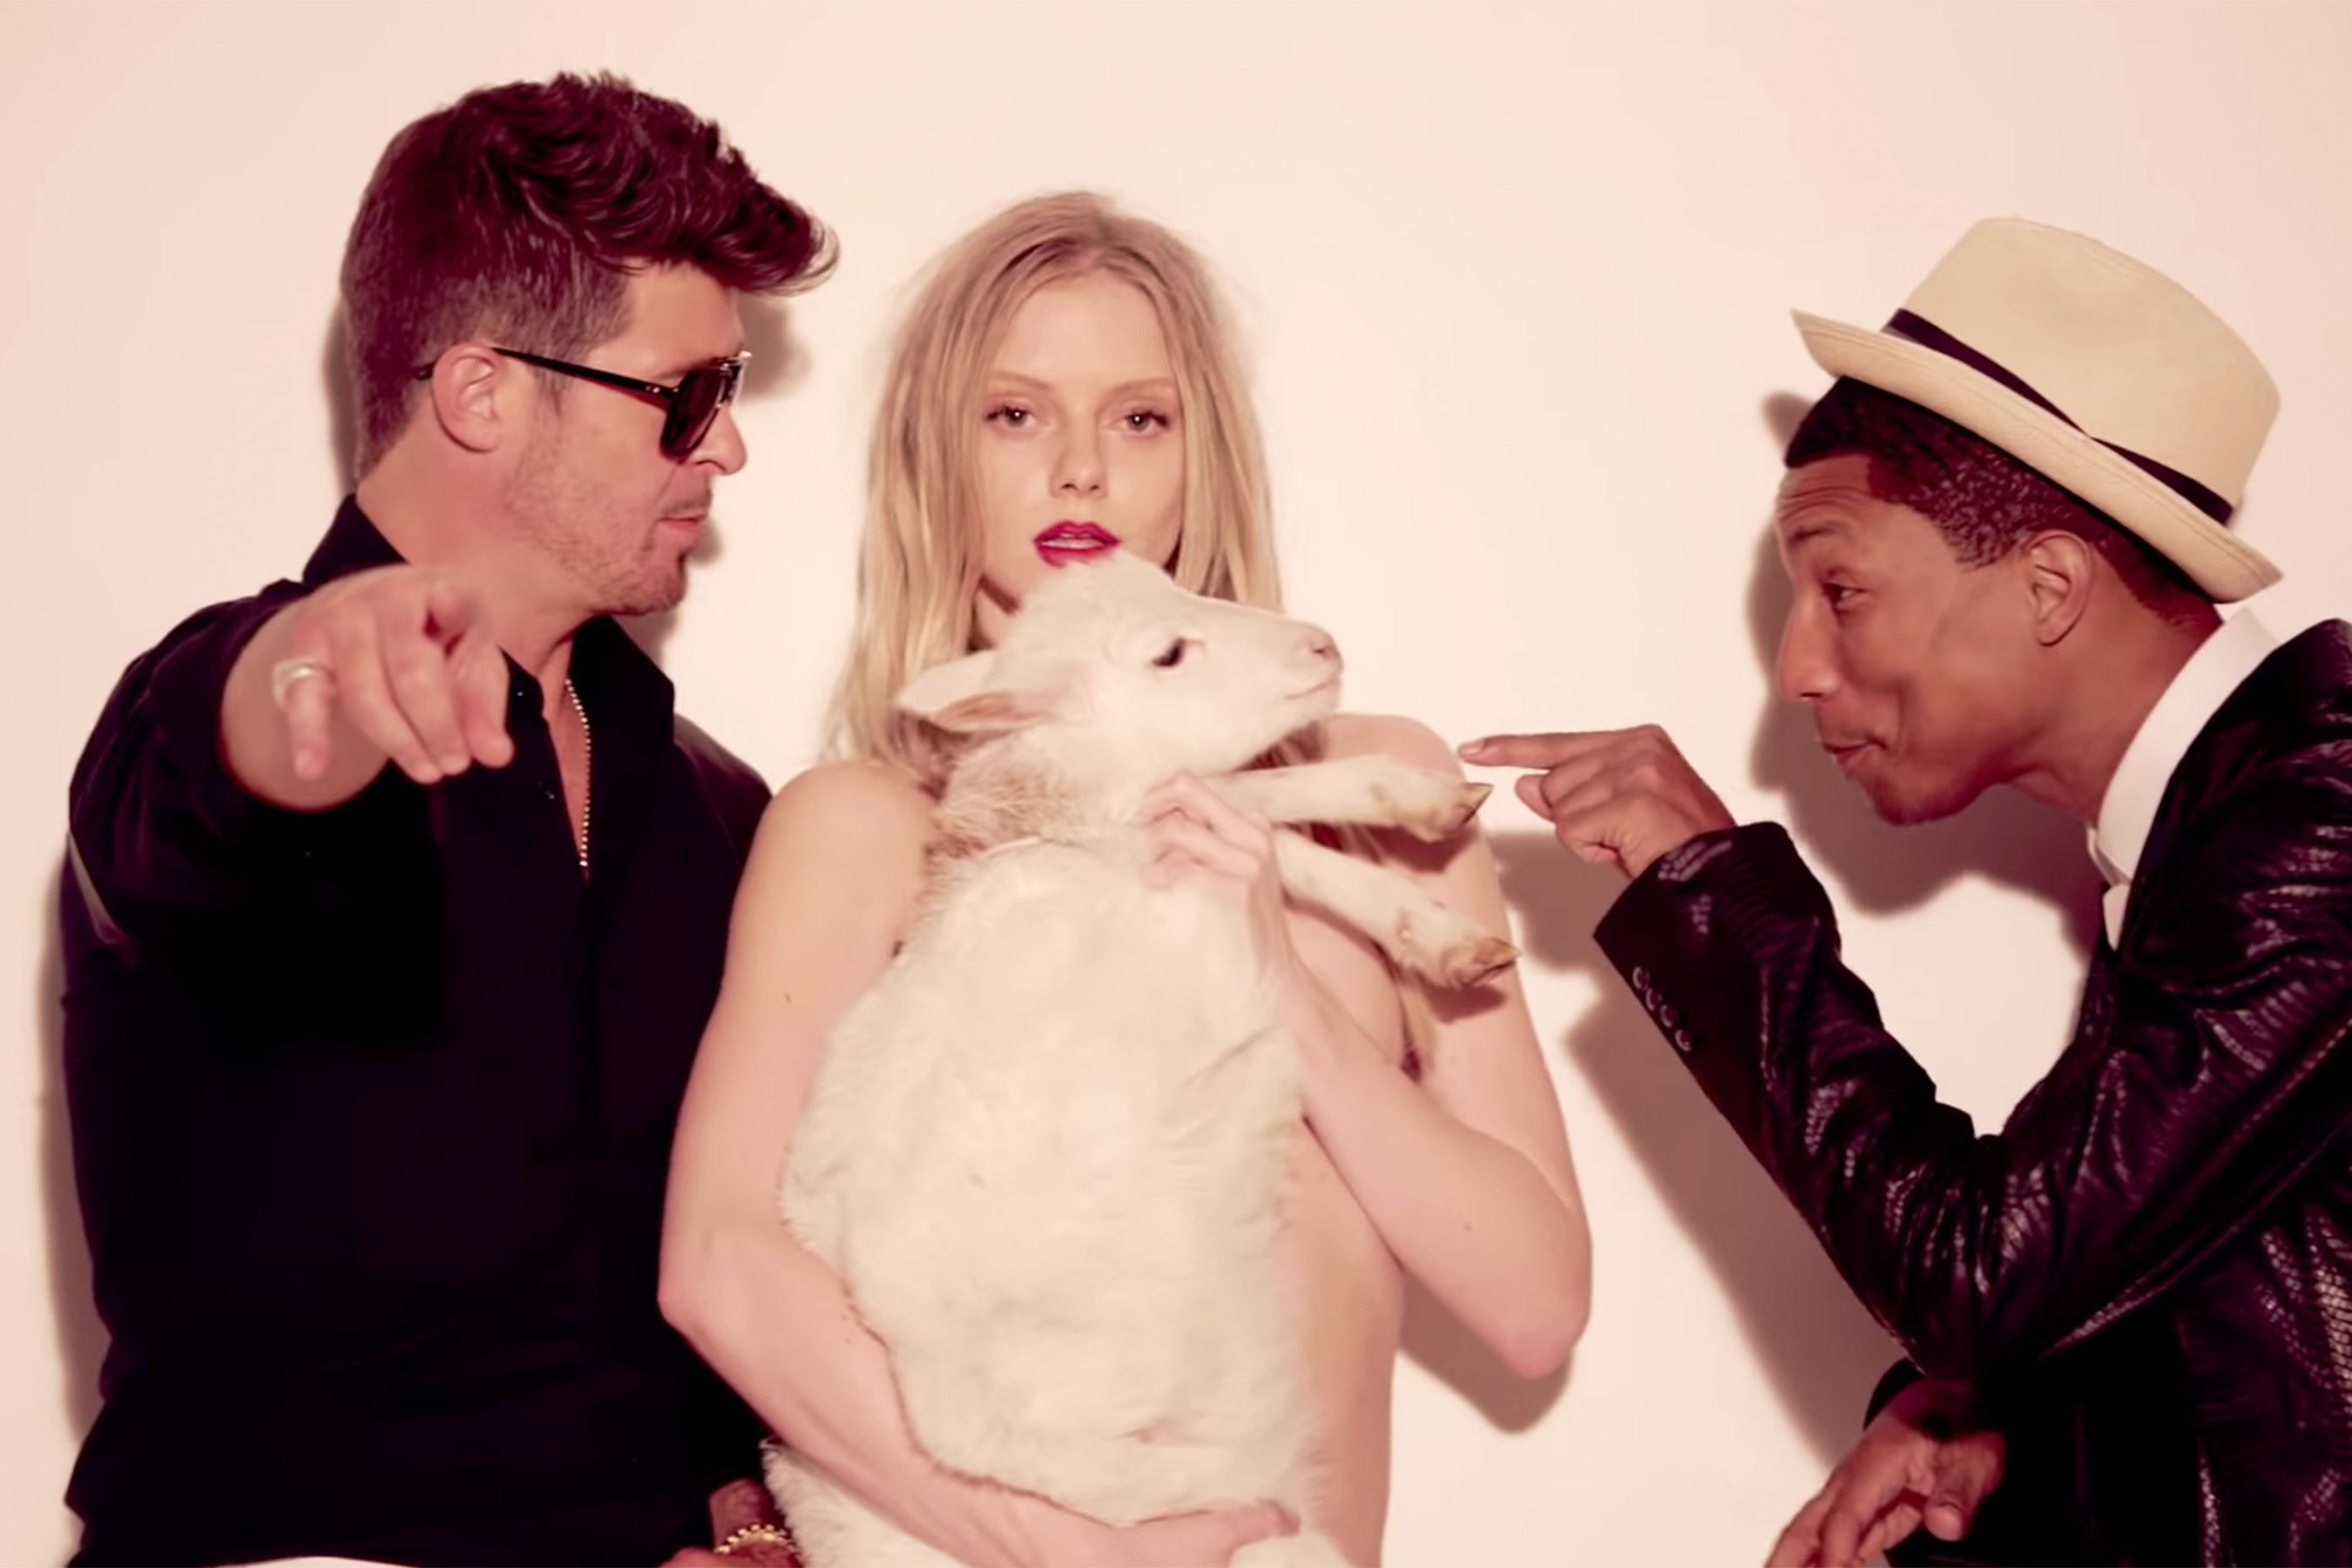 Blurred Lines copyright suit ends: Robin Thicke, Pharrell Williams to pay $5 million 6